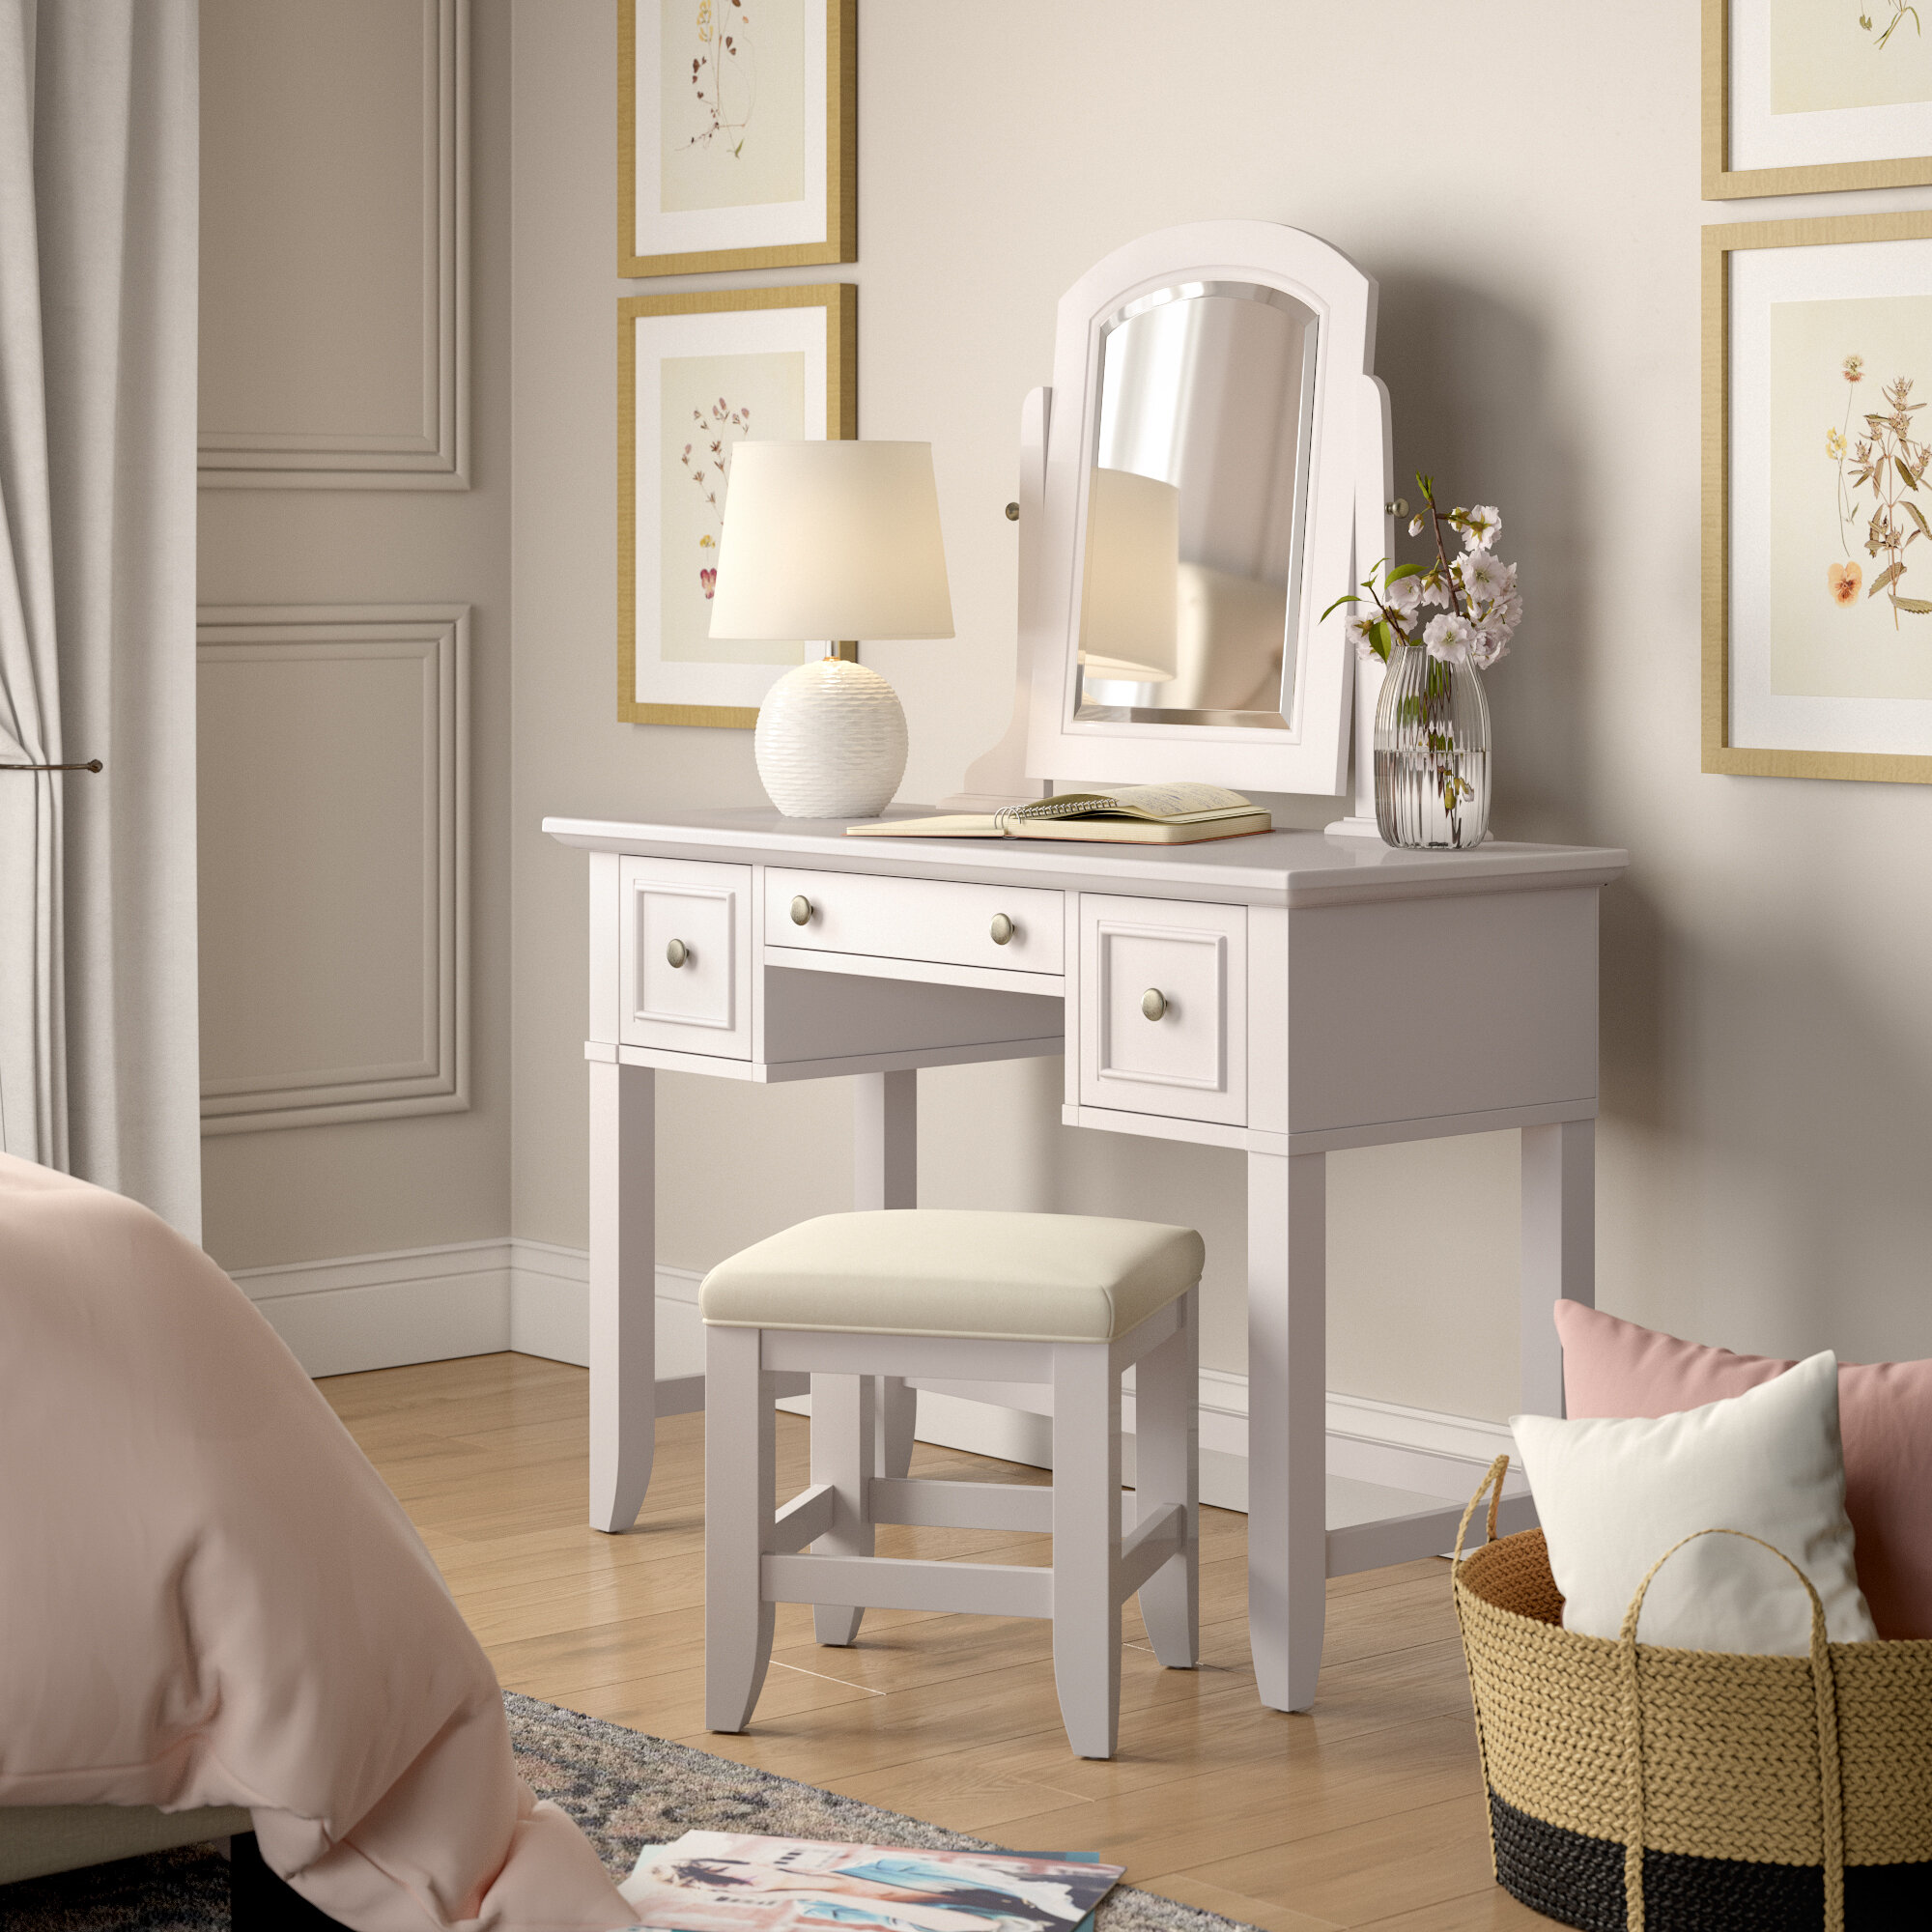 Peachy Birch Lane Heritage Barnard Vanity Stool Set With Mirror Caraccident5 Cool Chair Designs And Ideas Caraccident5Info